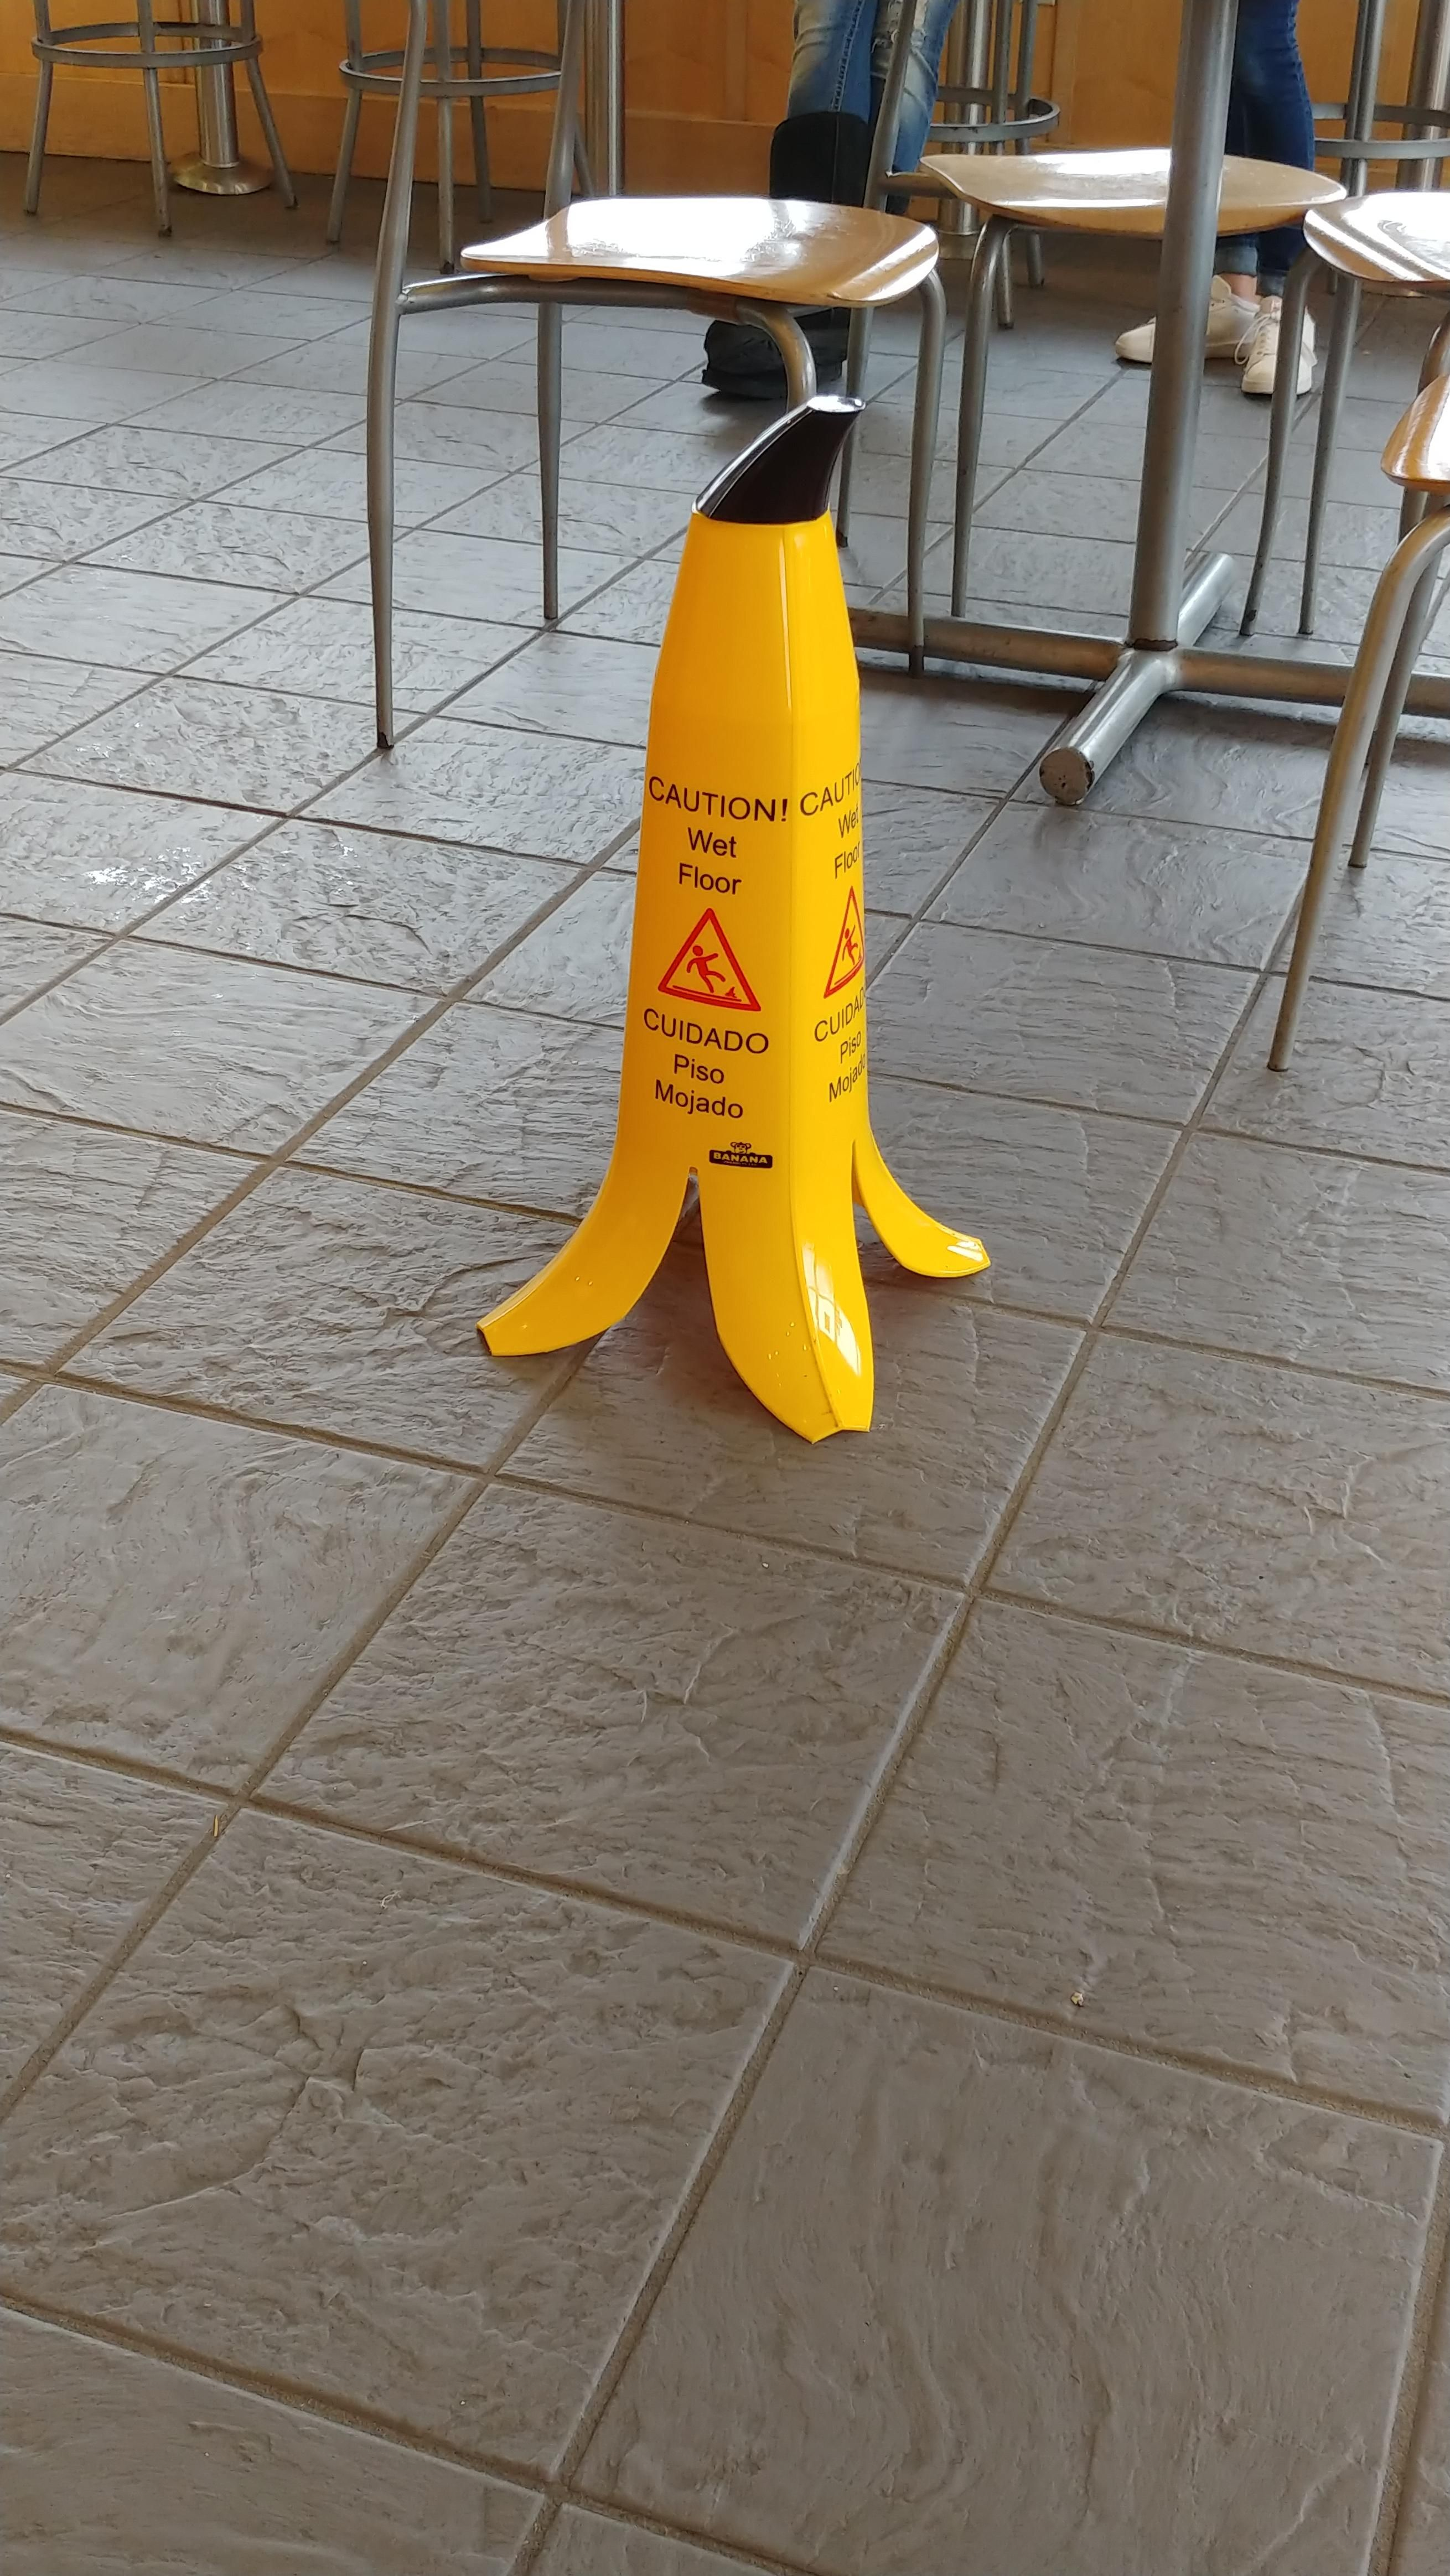 This Wet Floor Sign Looks Like A Banana To Indicate Slippery When Wet